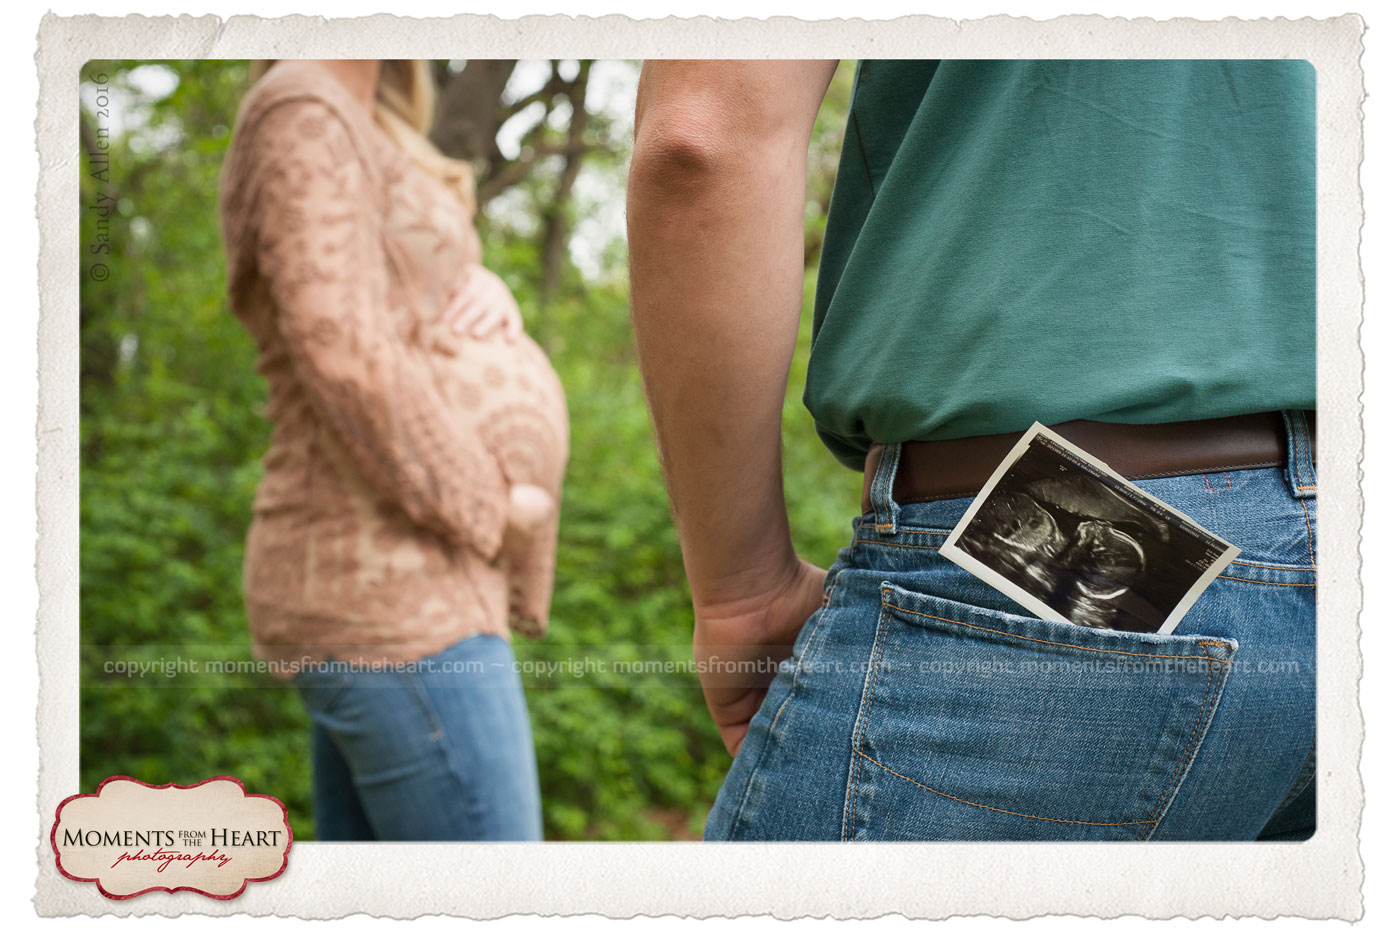 outdoor maternity couple with ultrasound baby photo